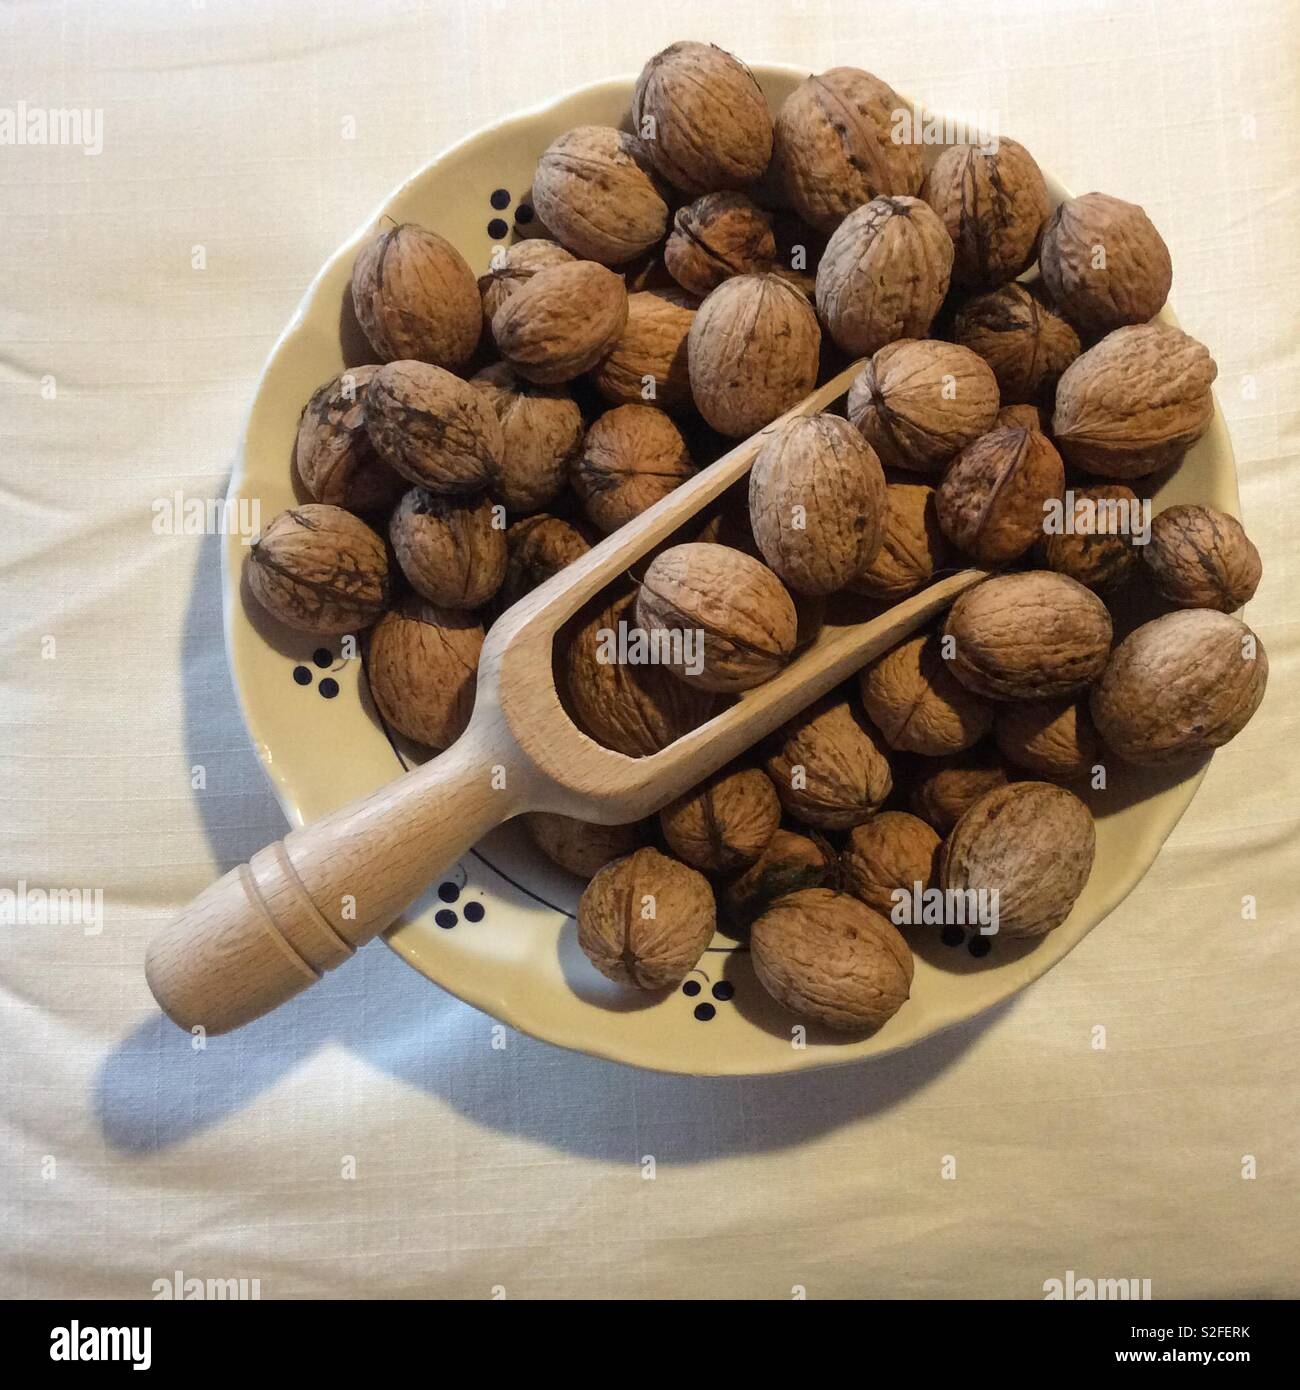 View from above on harvested walnuts and wooden chute in vintage ceramic bowl Stock Photo